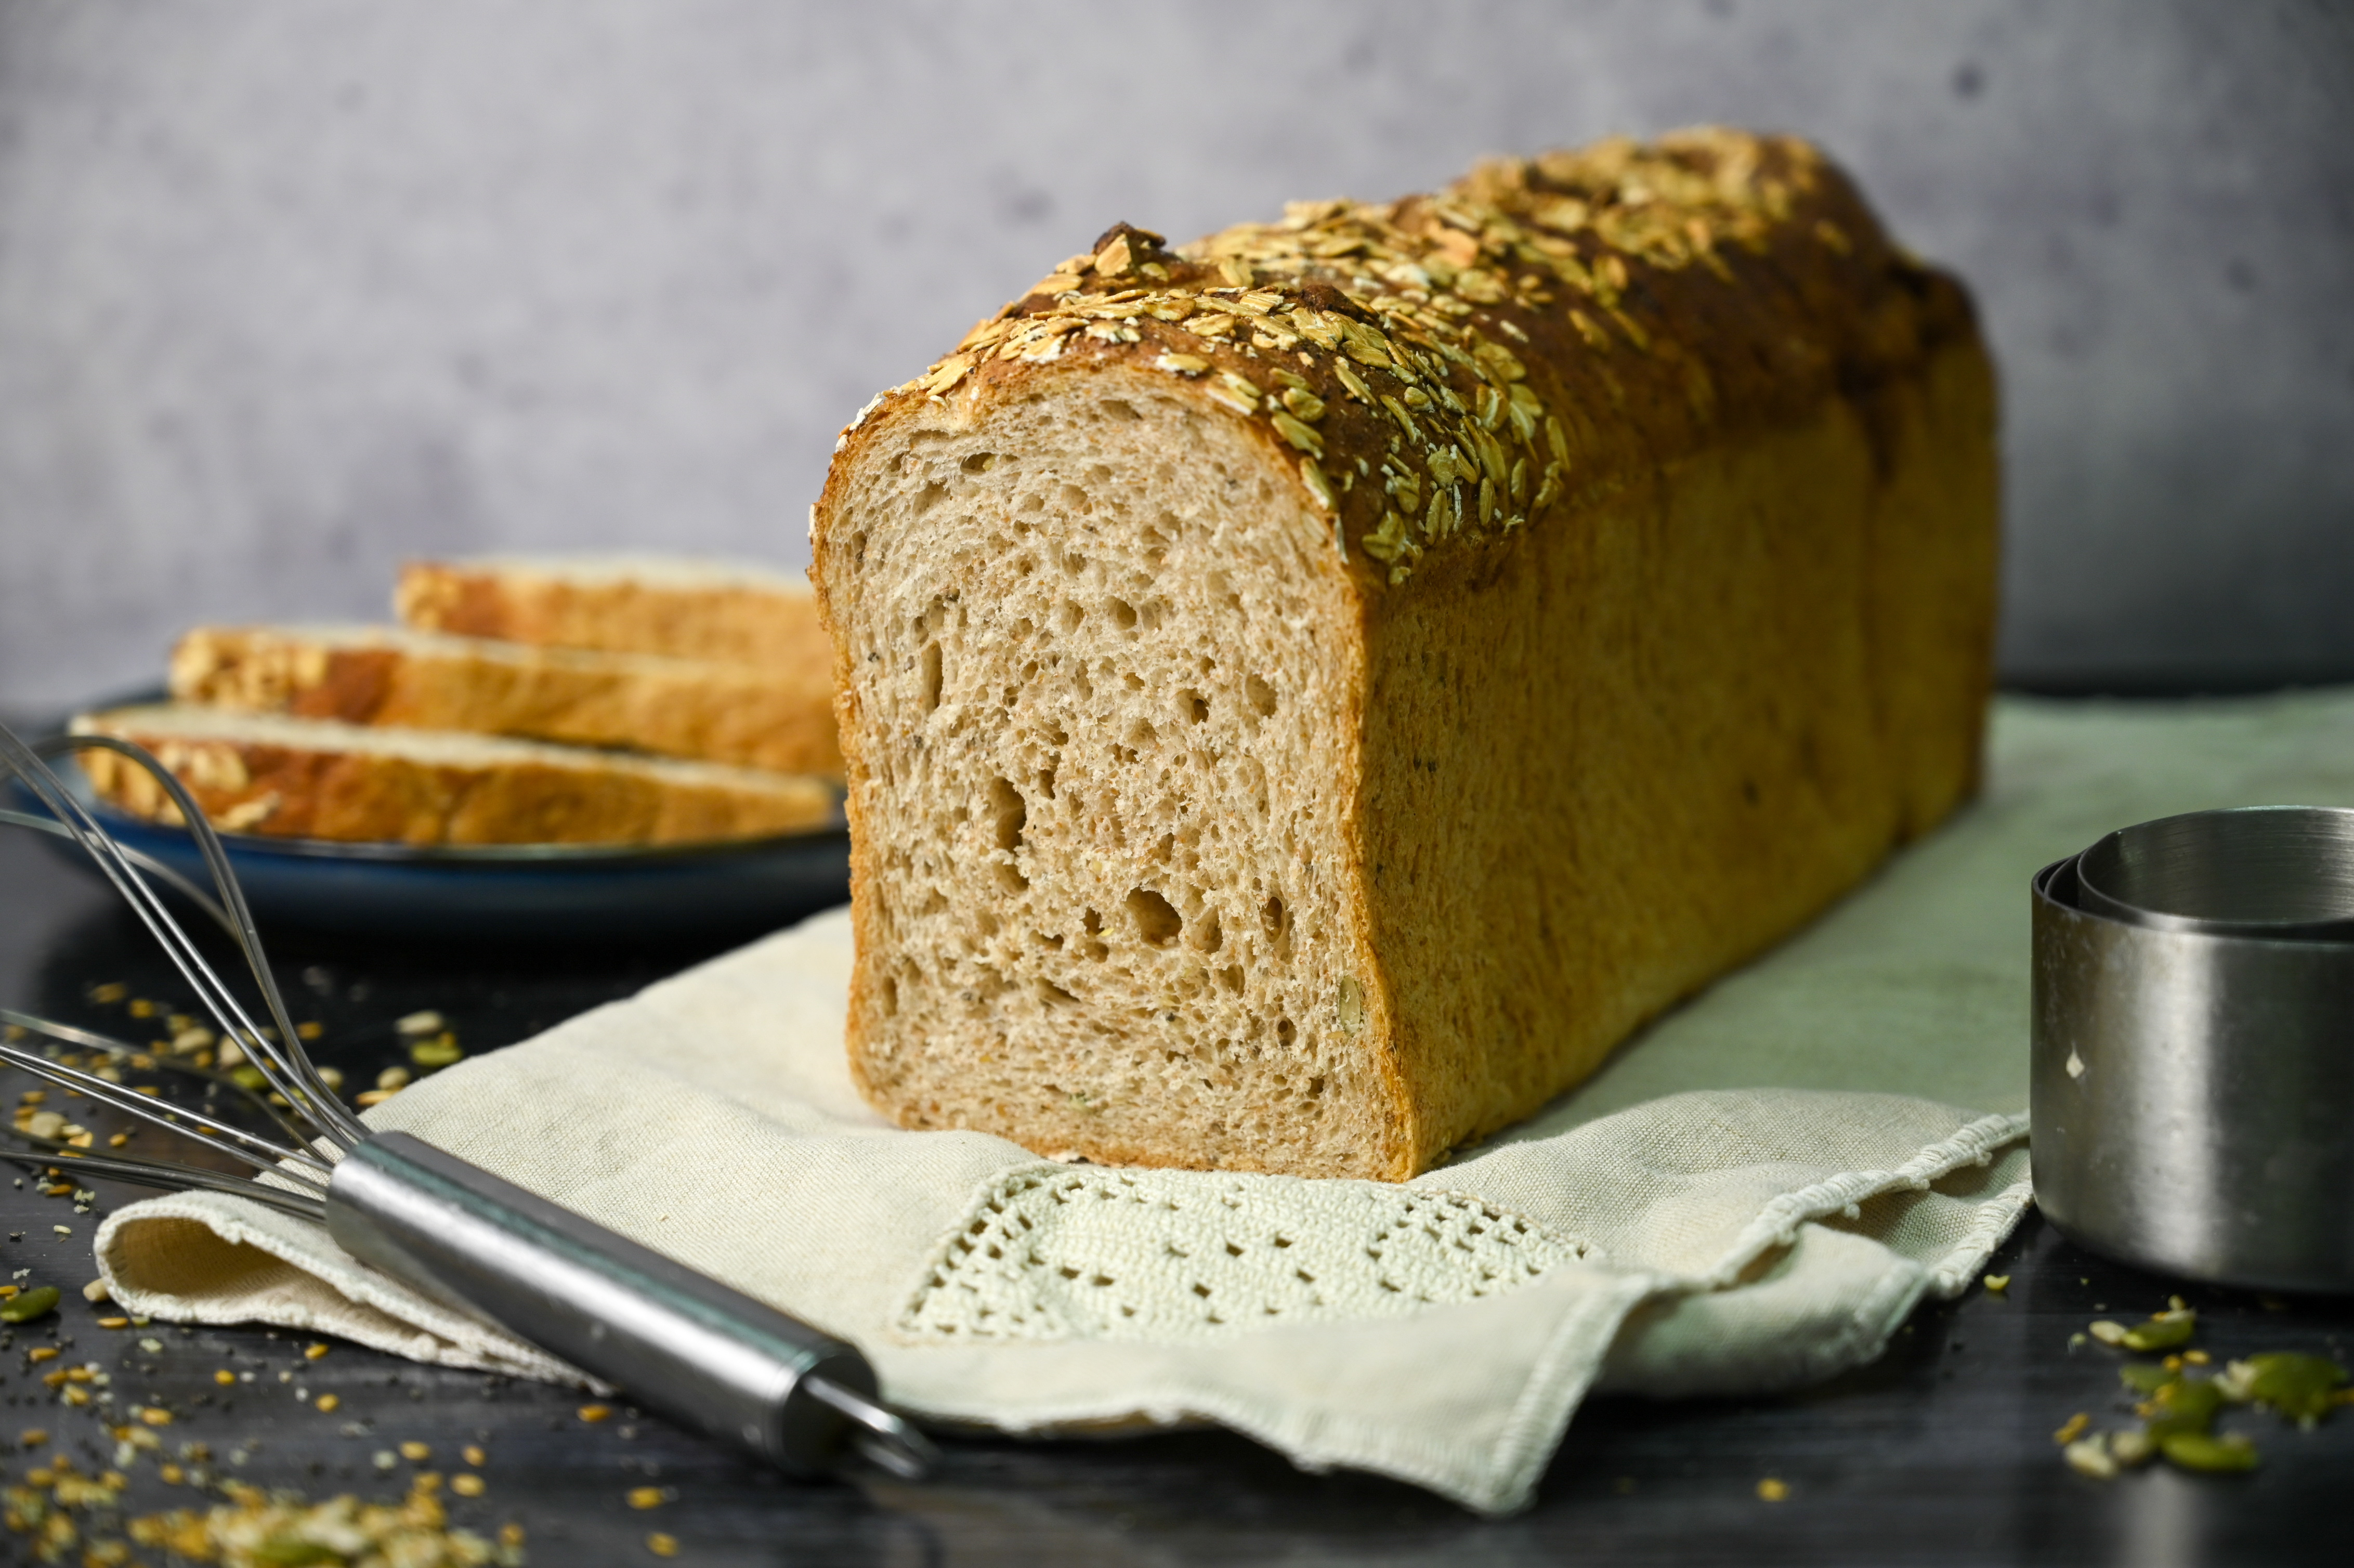 A tall, medium-brown loaf of bread is sliced near the end, with a stack of three slices piled up in the background. The loaf sits on an off-white cloth on a dark surface, with a metal whisk visible in the foreground.